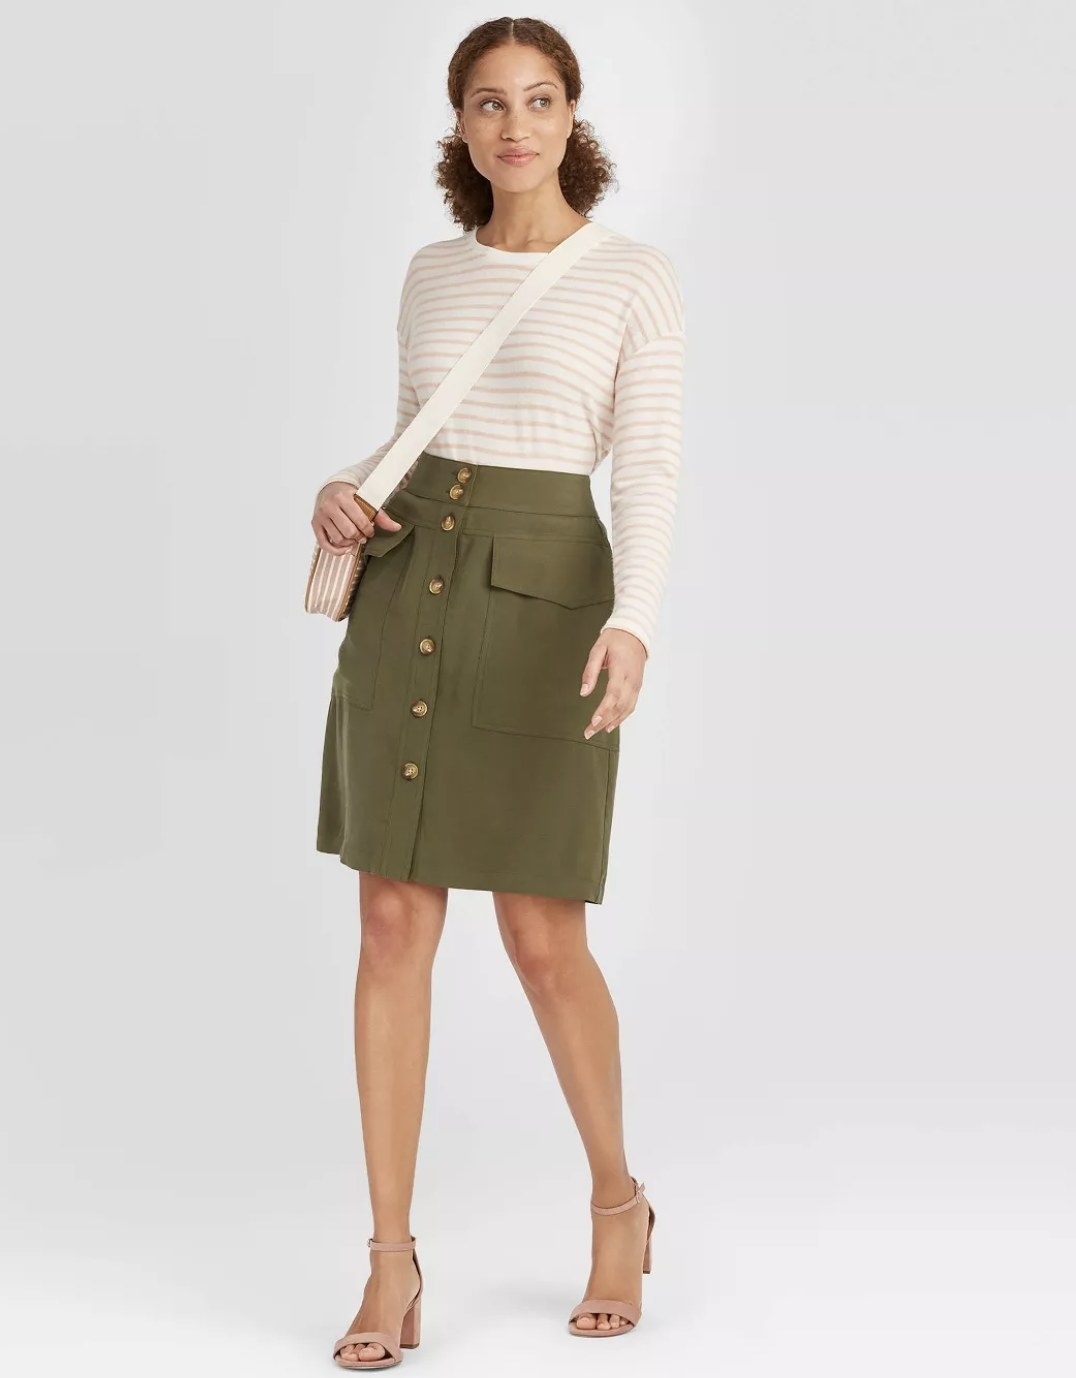 Model wearing the olive green button-down skirt